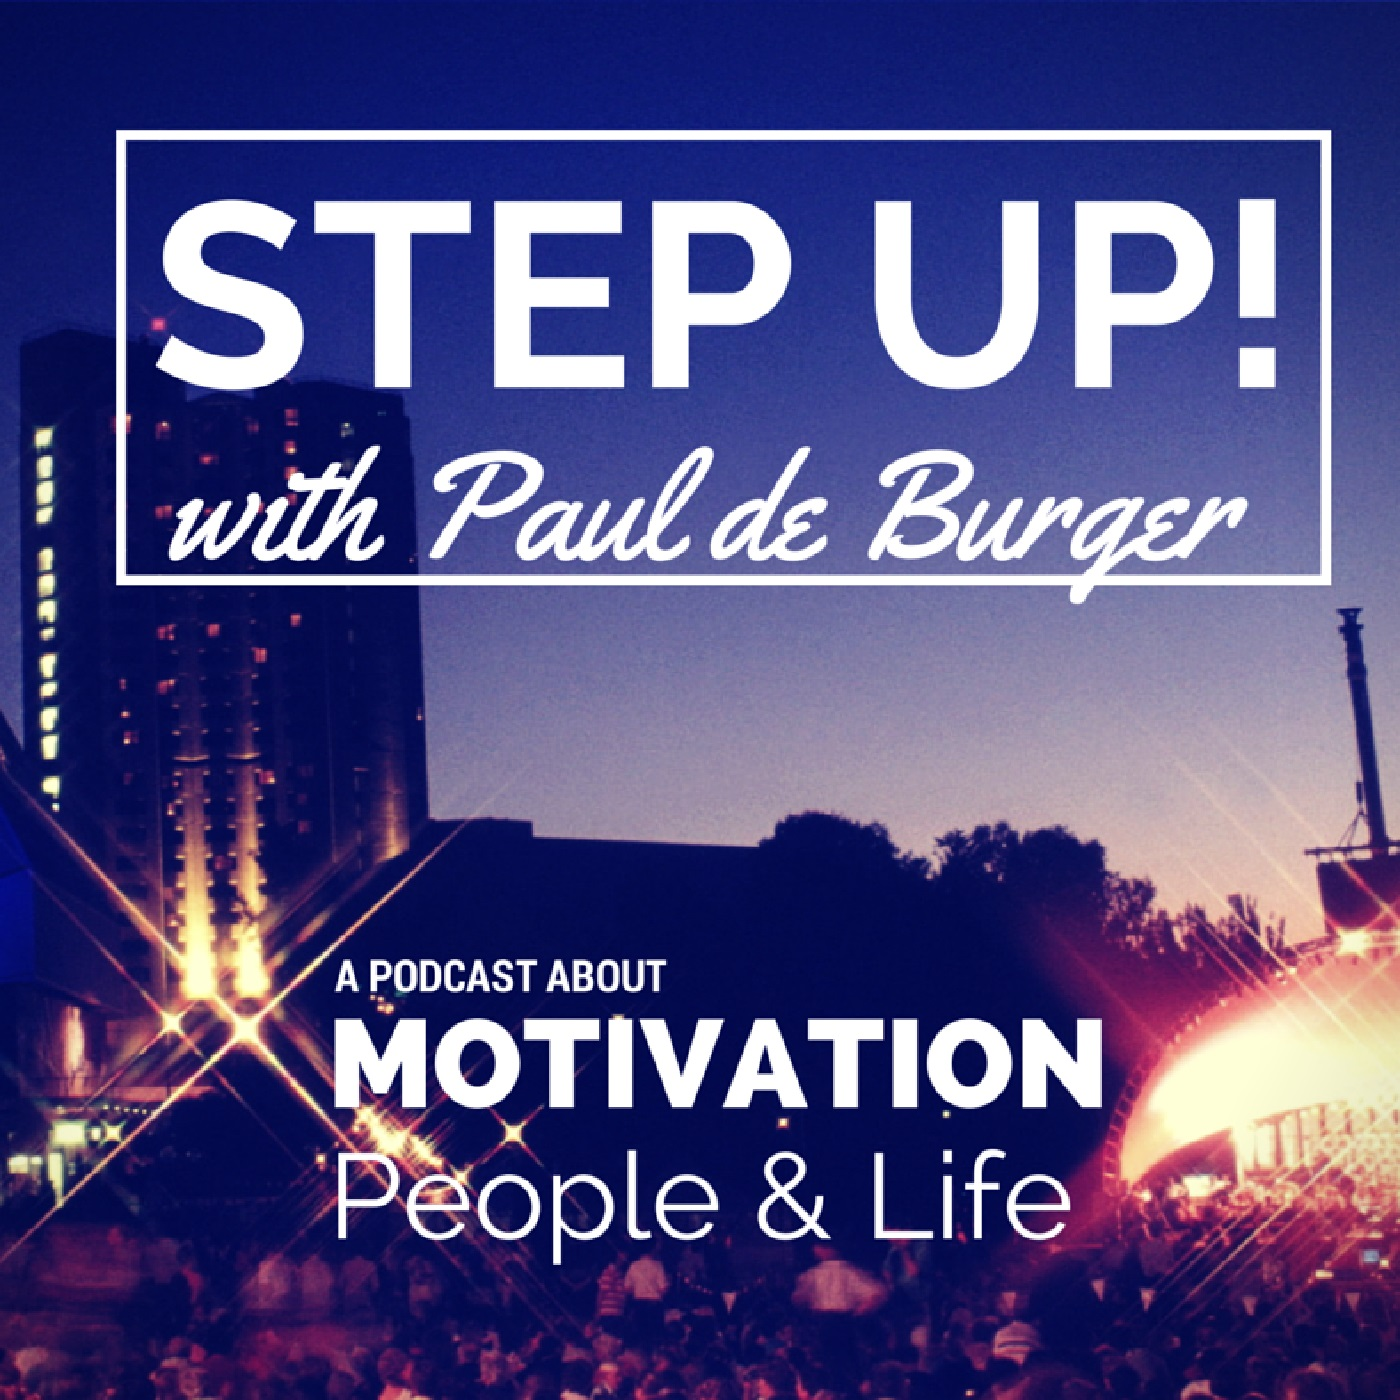 Step Up! with Paul de Burger